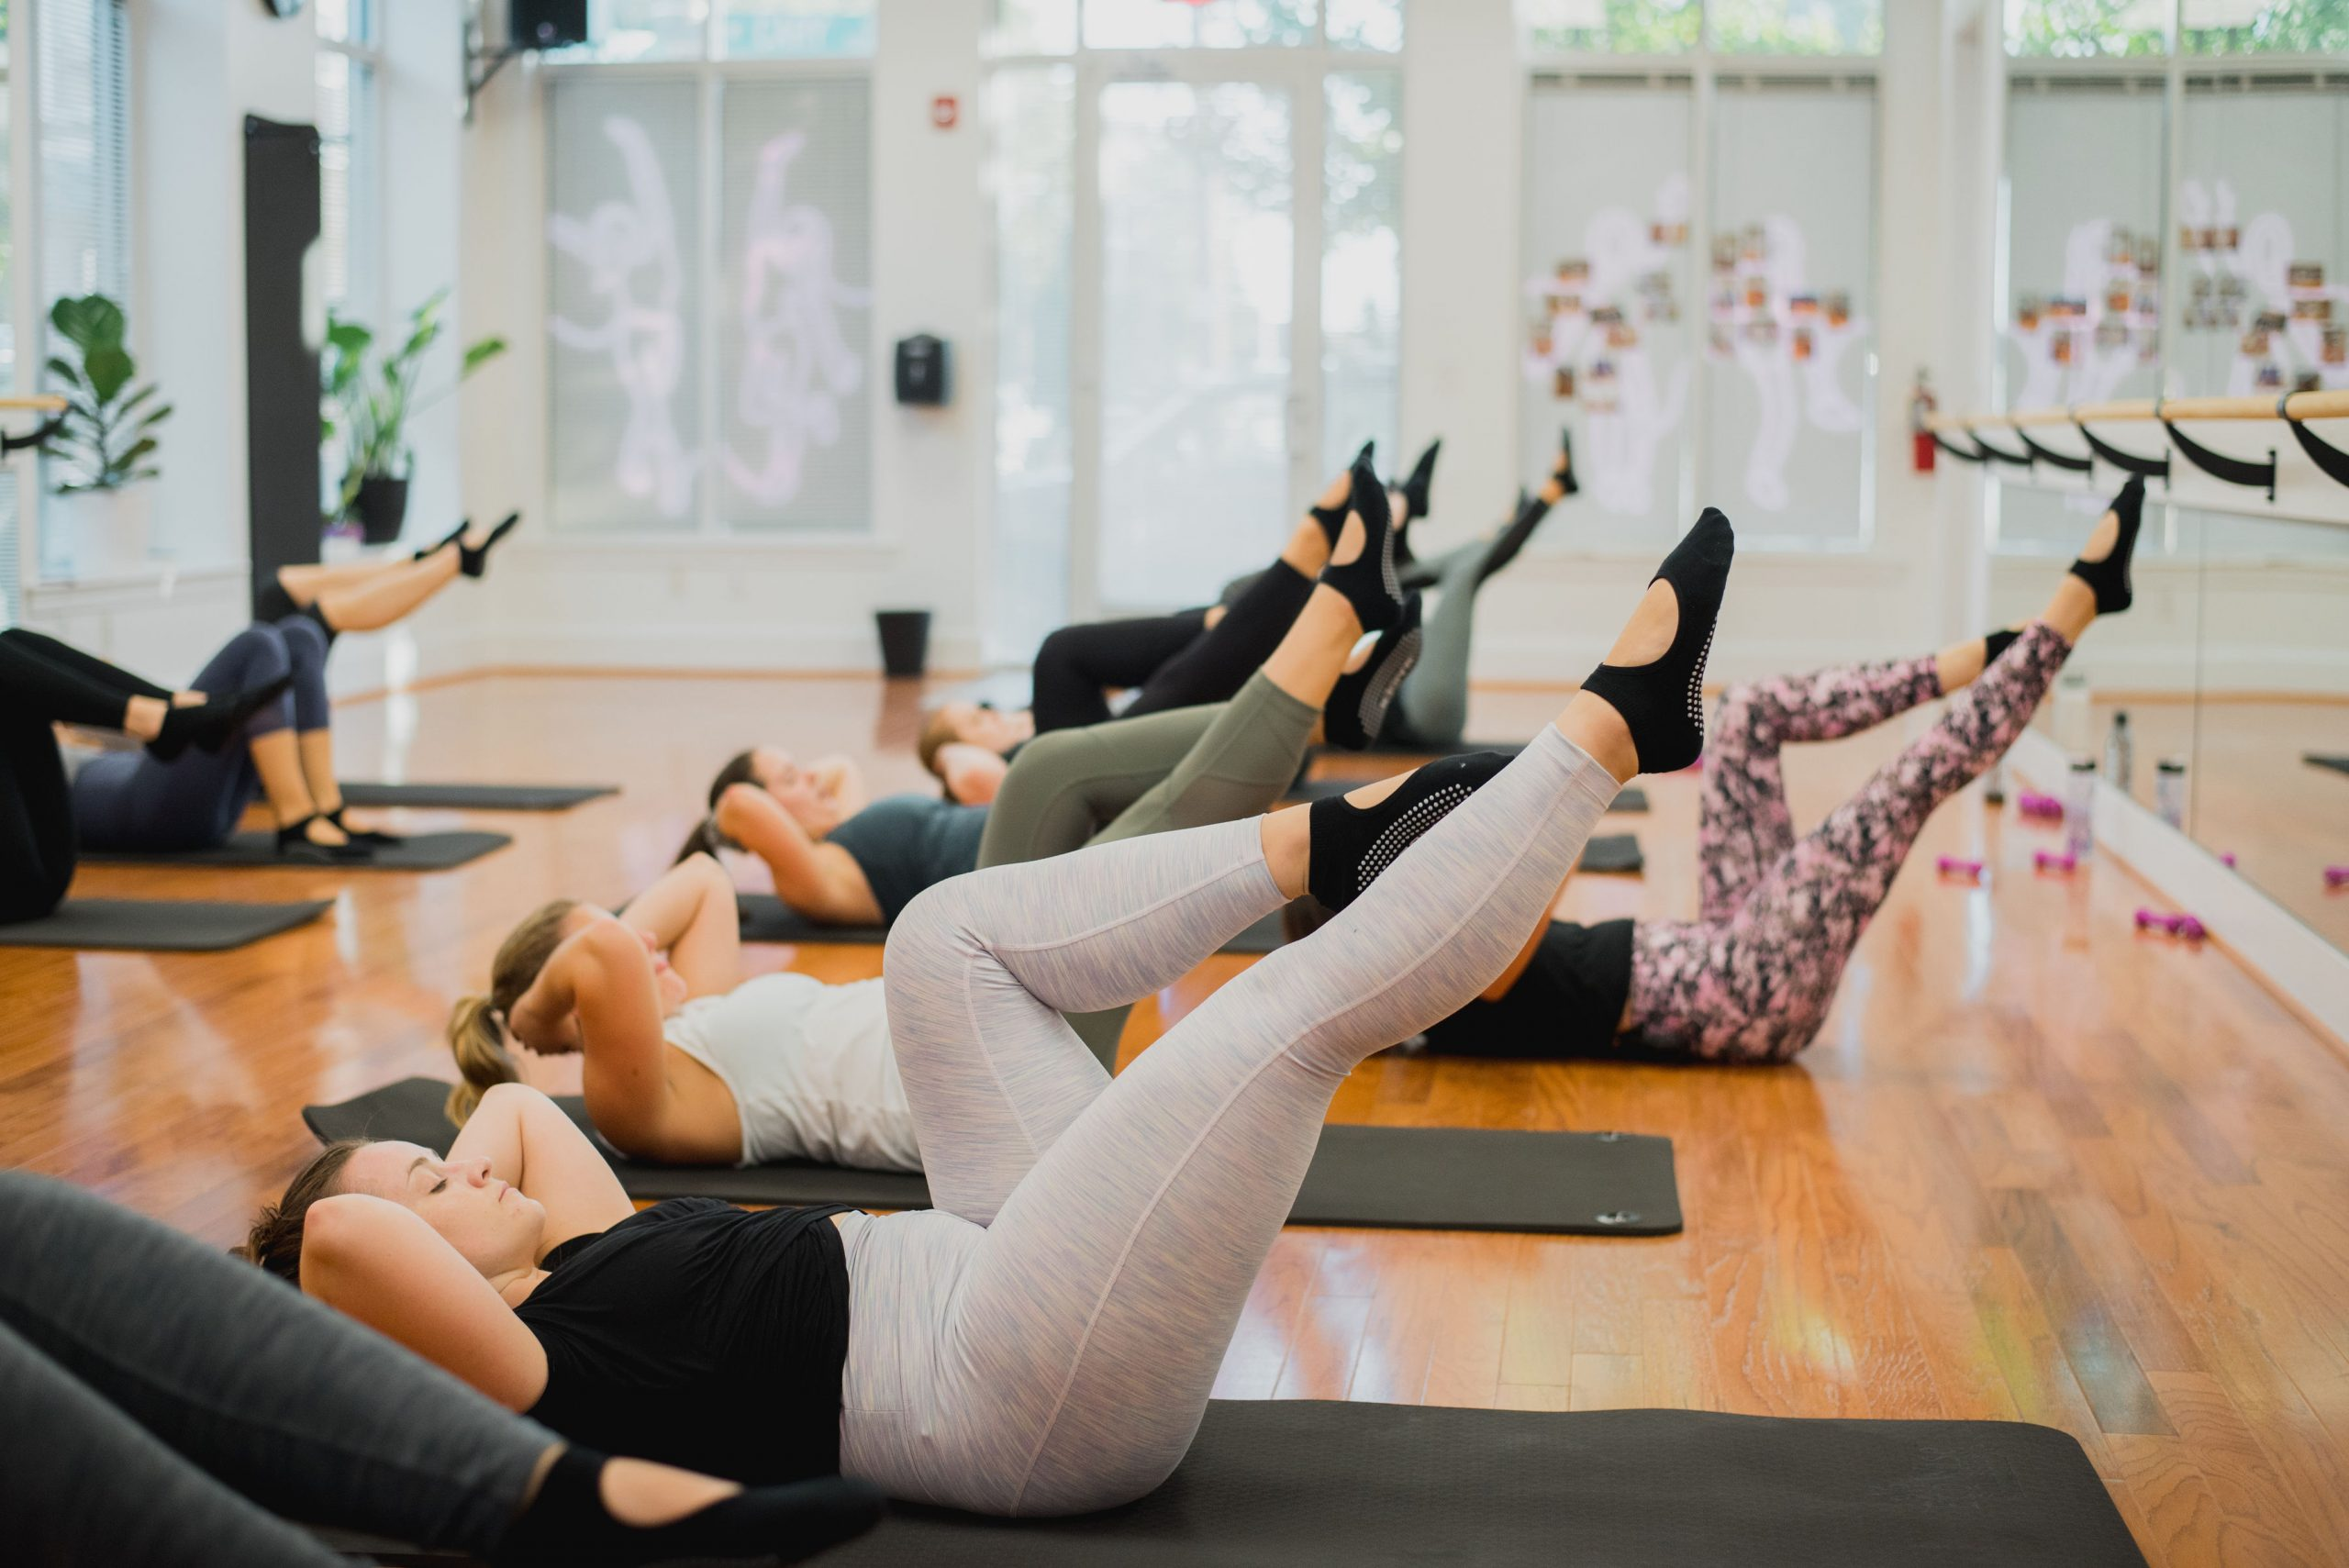 Why we do ab exercises in our cardio dance classes